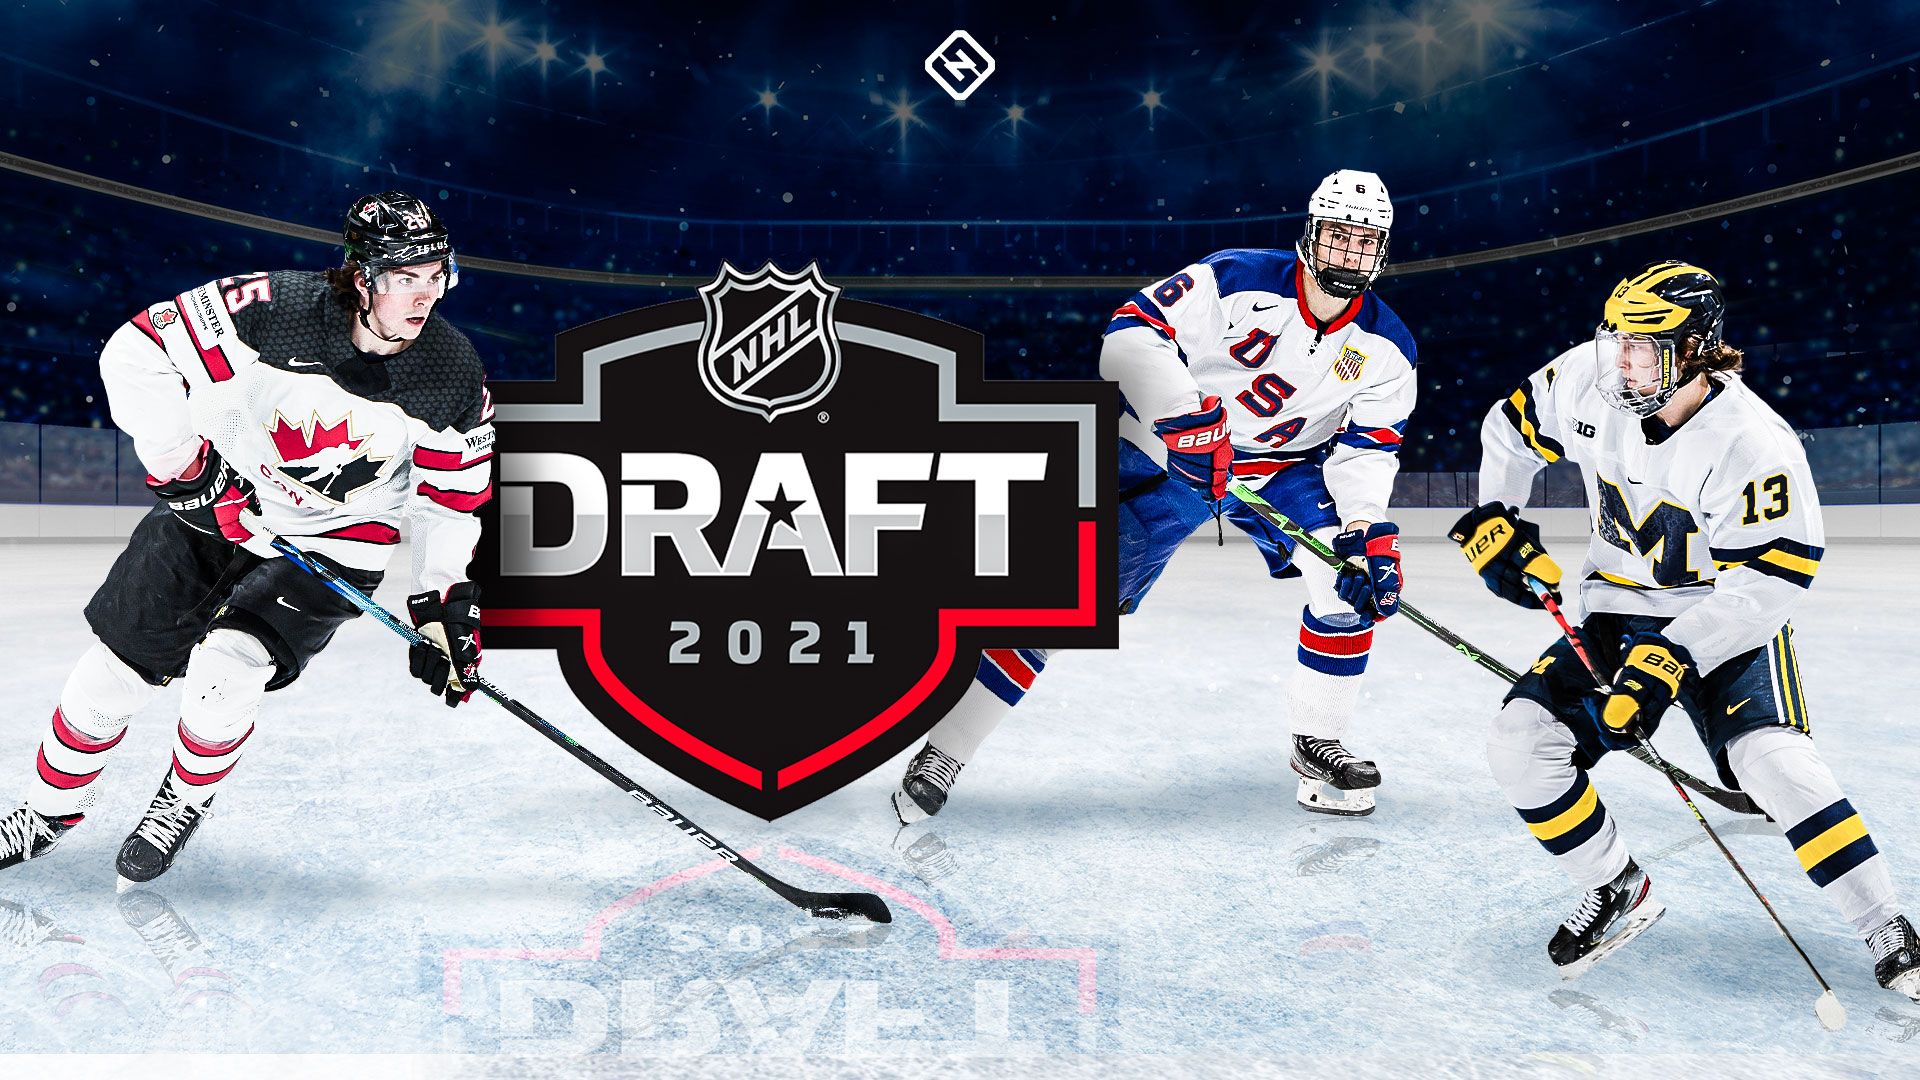 NHL Draft tracker 2021: latest news, rumors about selections, transfers and trades